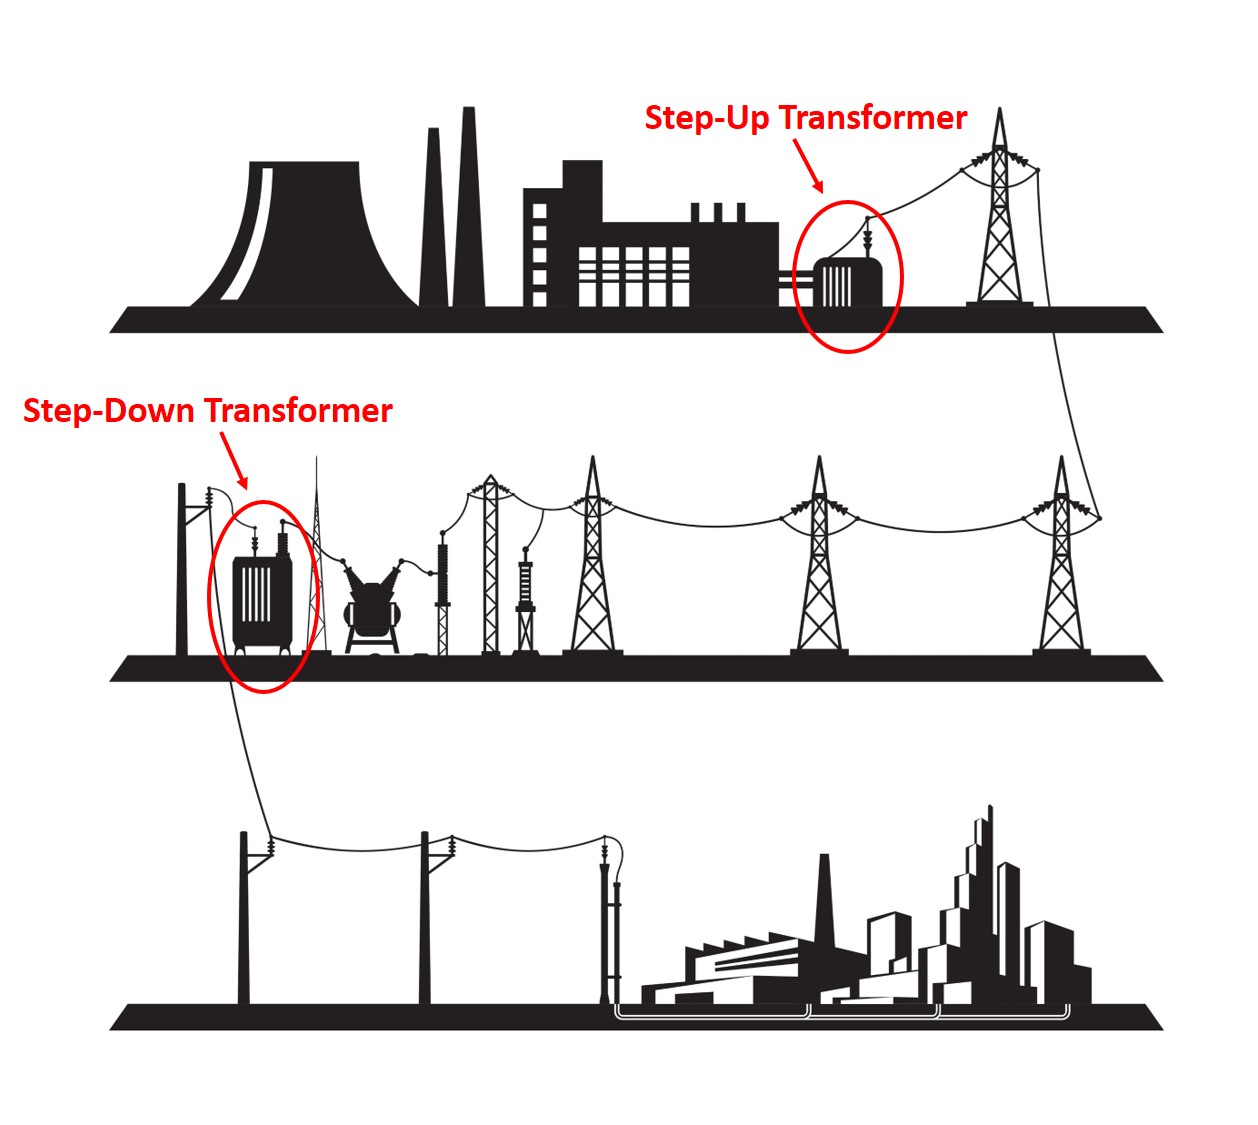 This graphic shows the electrical power system from the point of generation, through the transmission and distribution system (including step-up and step-down transformers), to the end-user neighborhood.